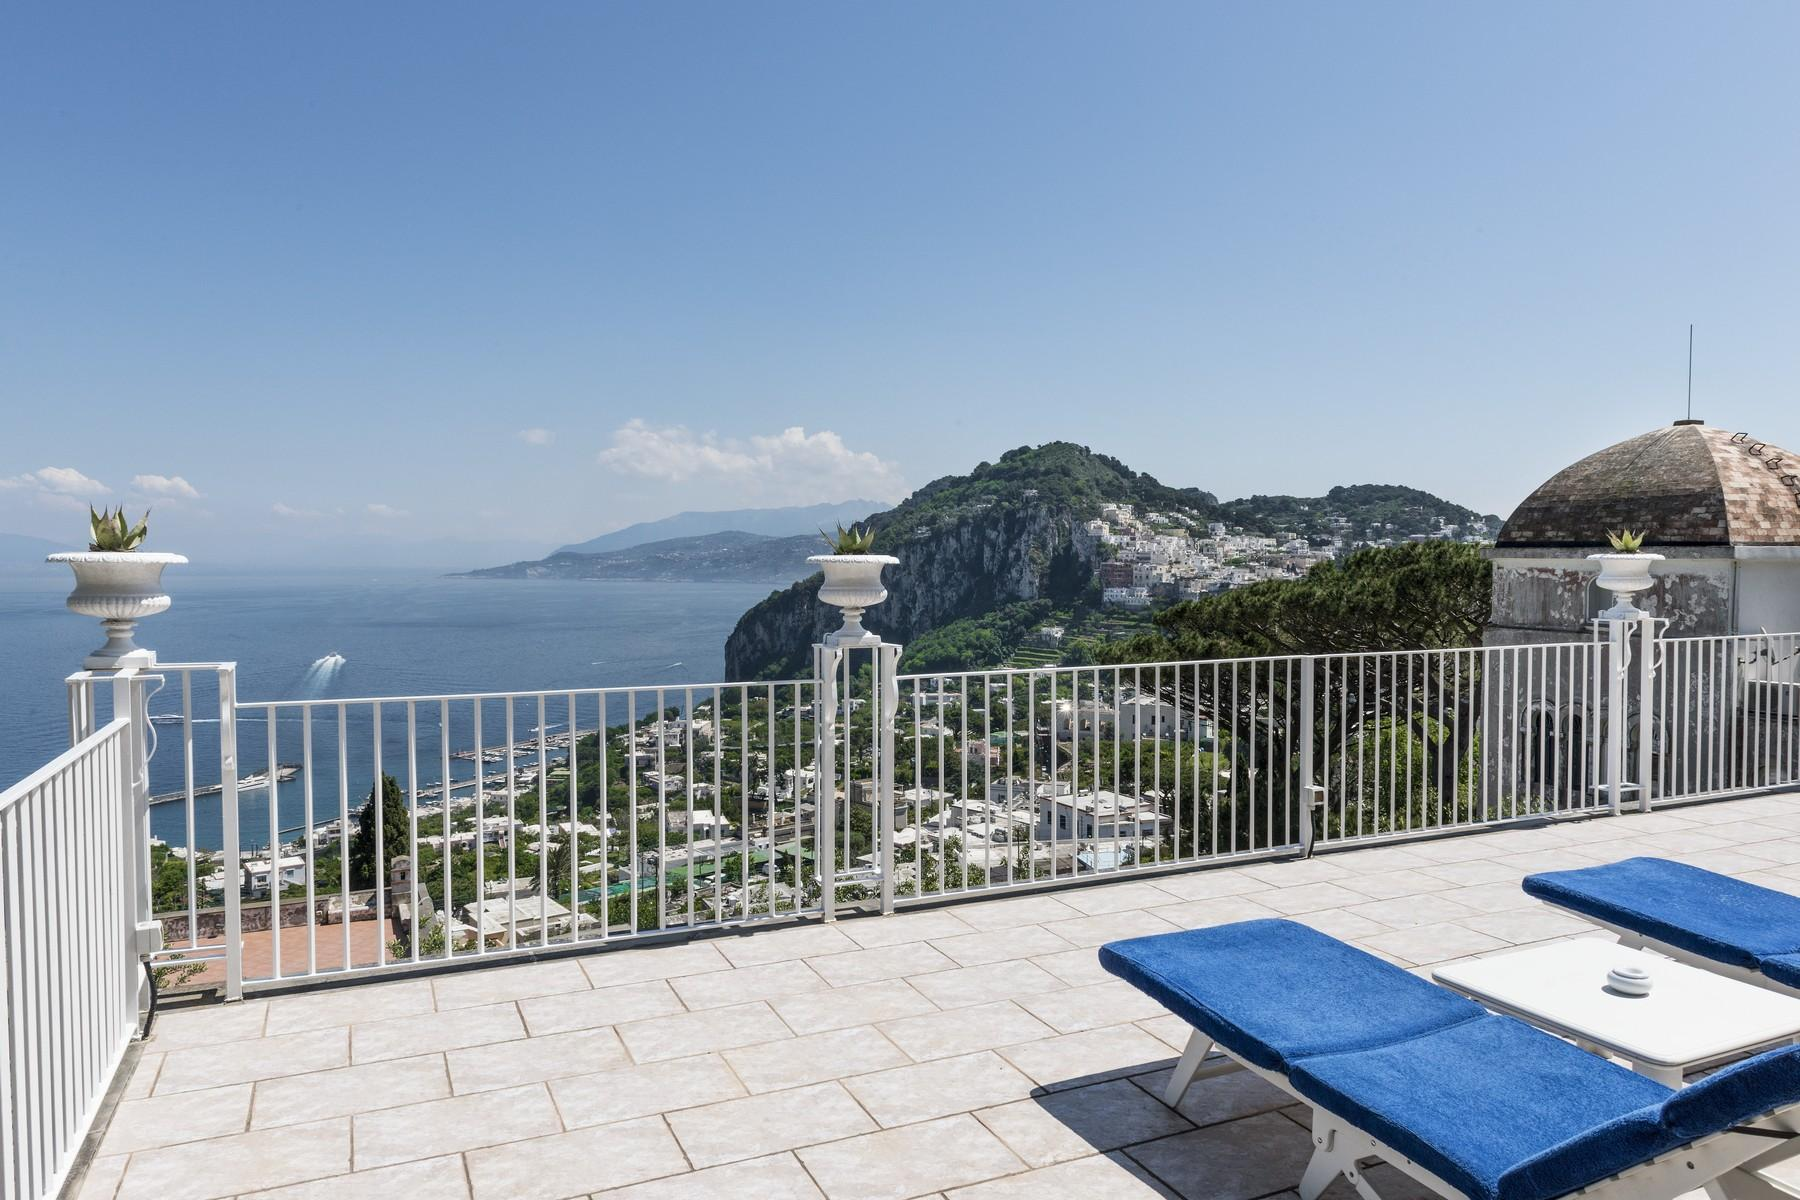 Amazing villa overlooking the sea and the most beautiful garden in the island - 5